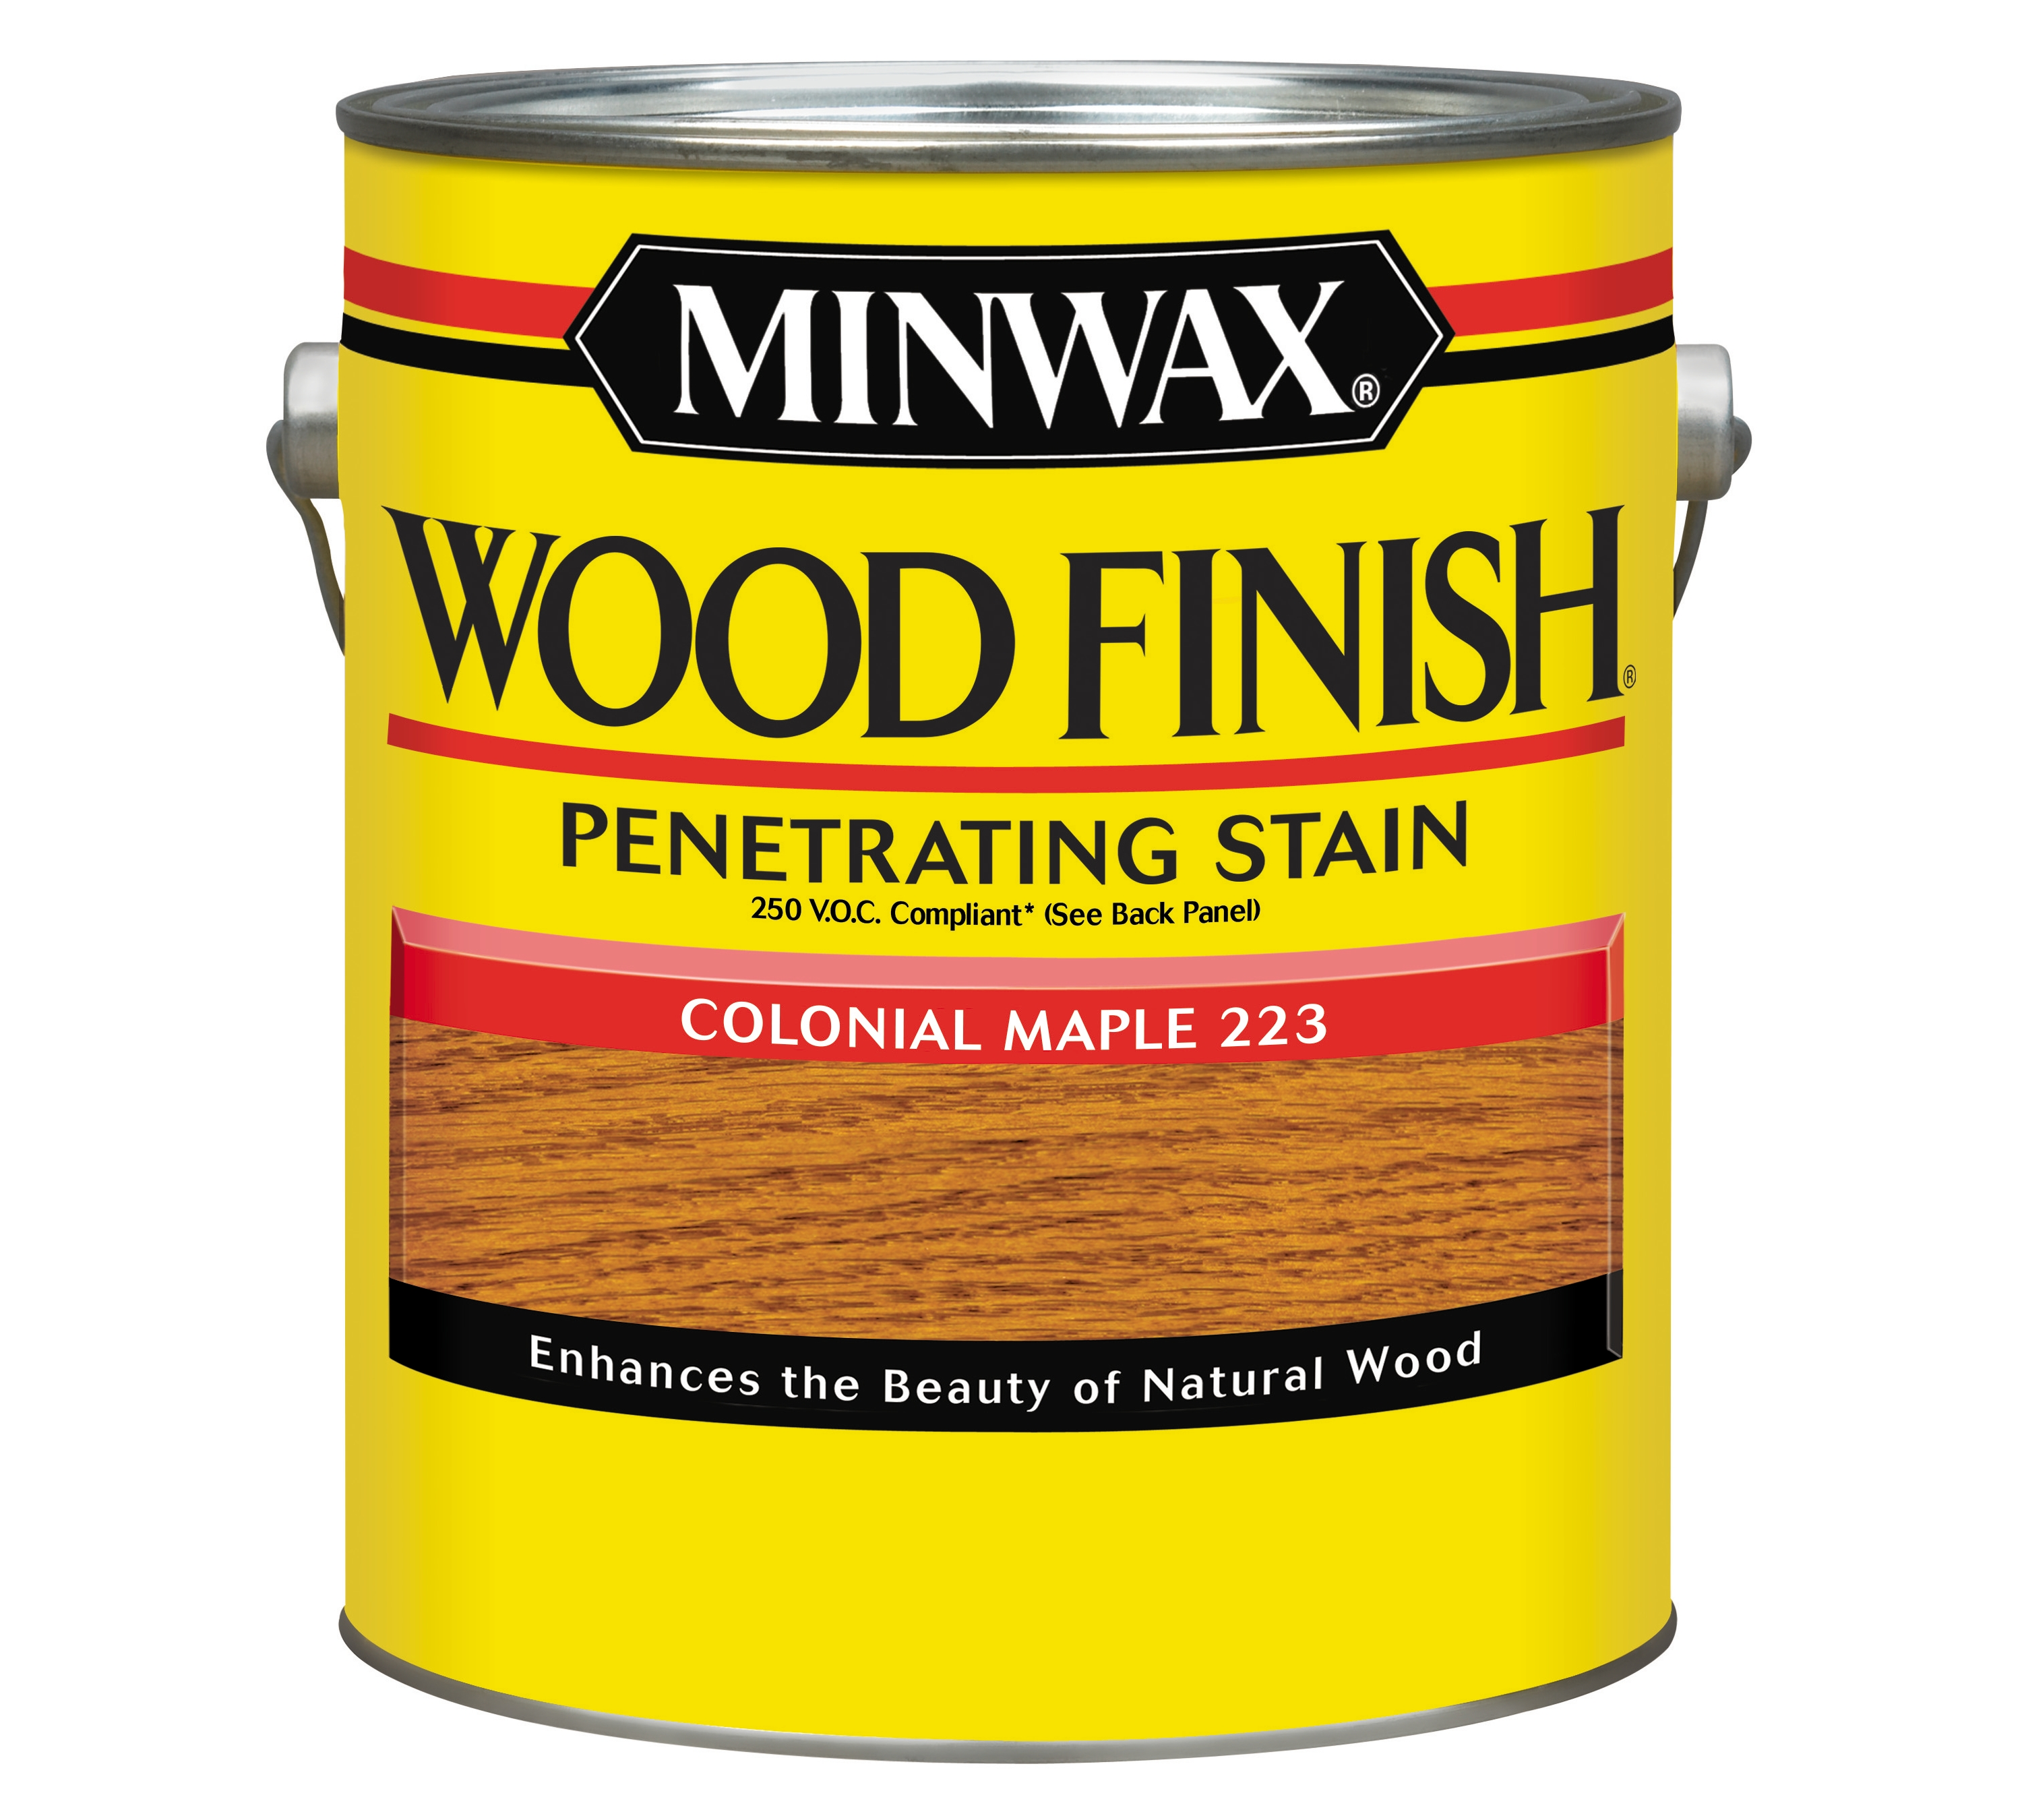 Minwax Wood Finish Colonial Maple